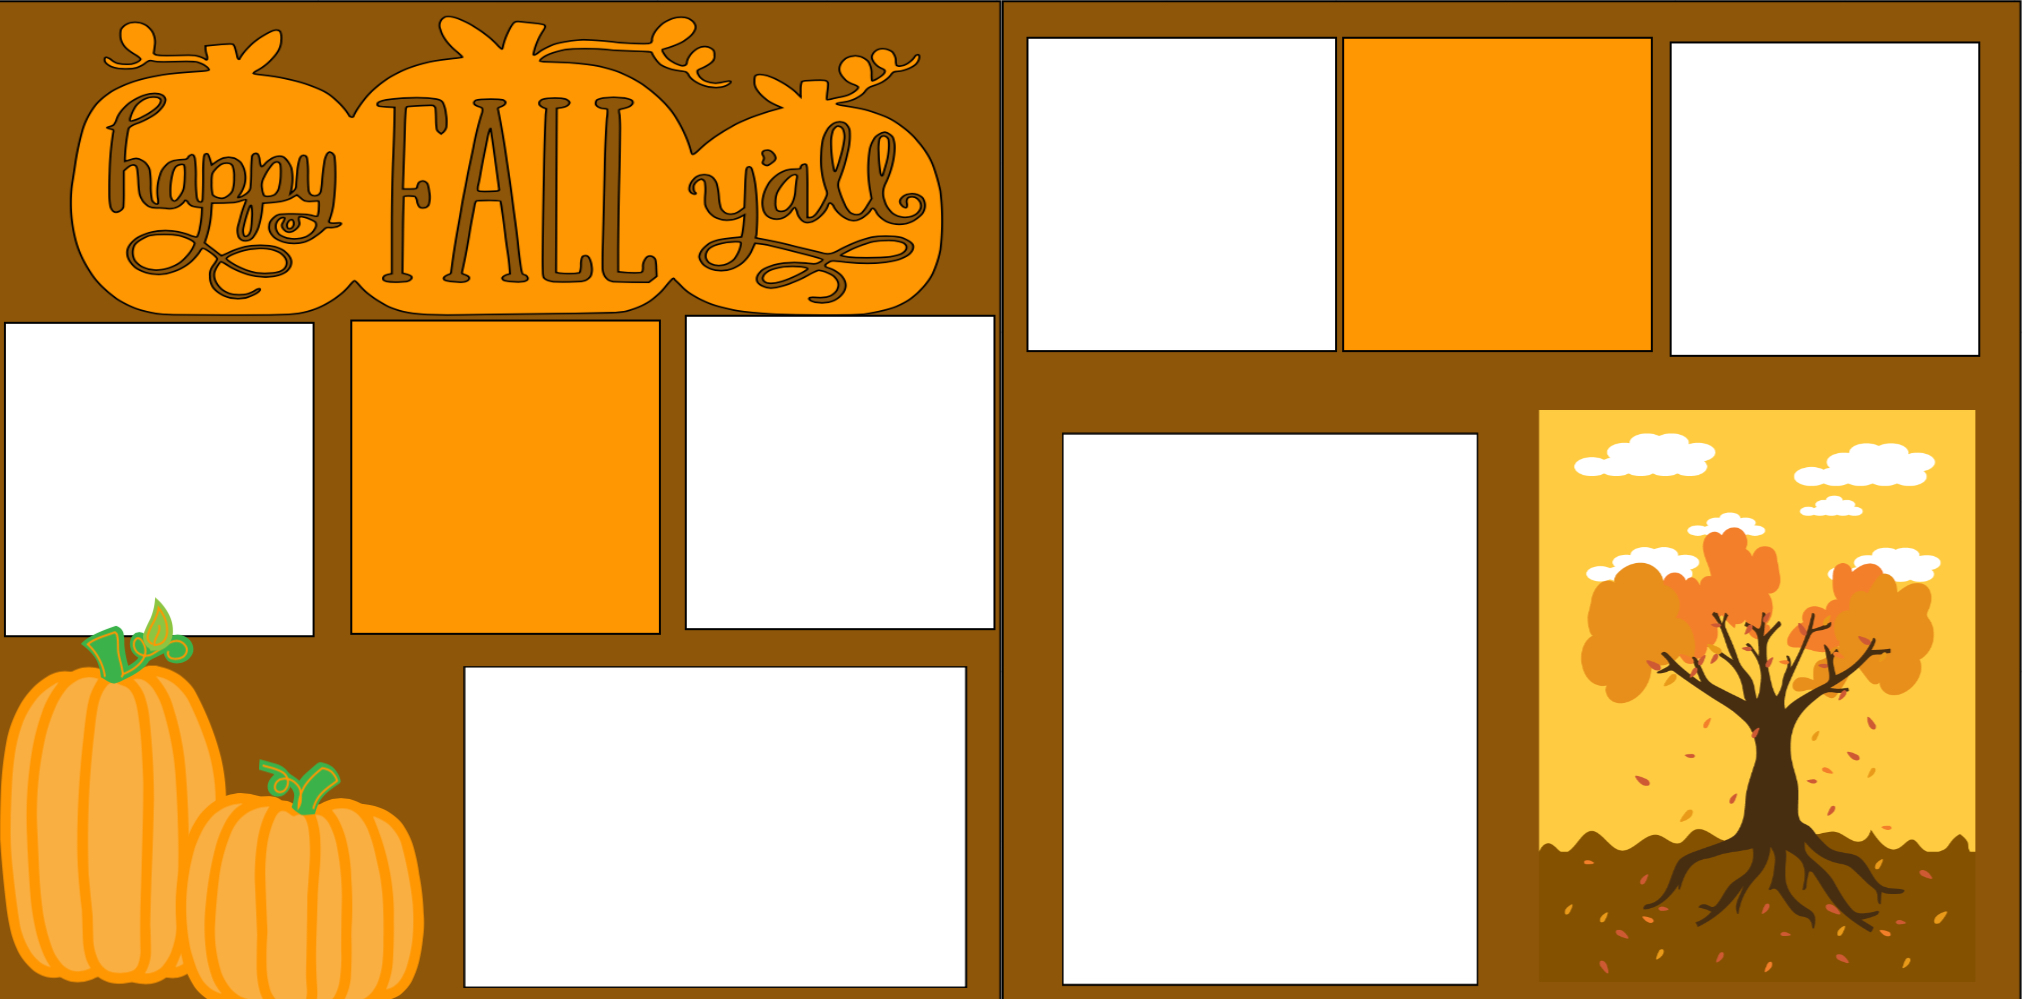 Happy Fall Y'all -  page kit